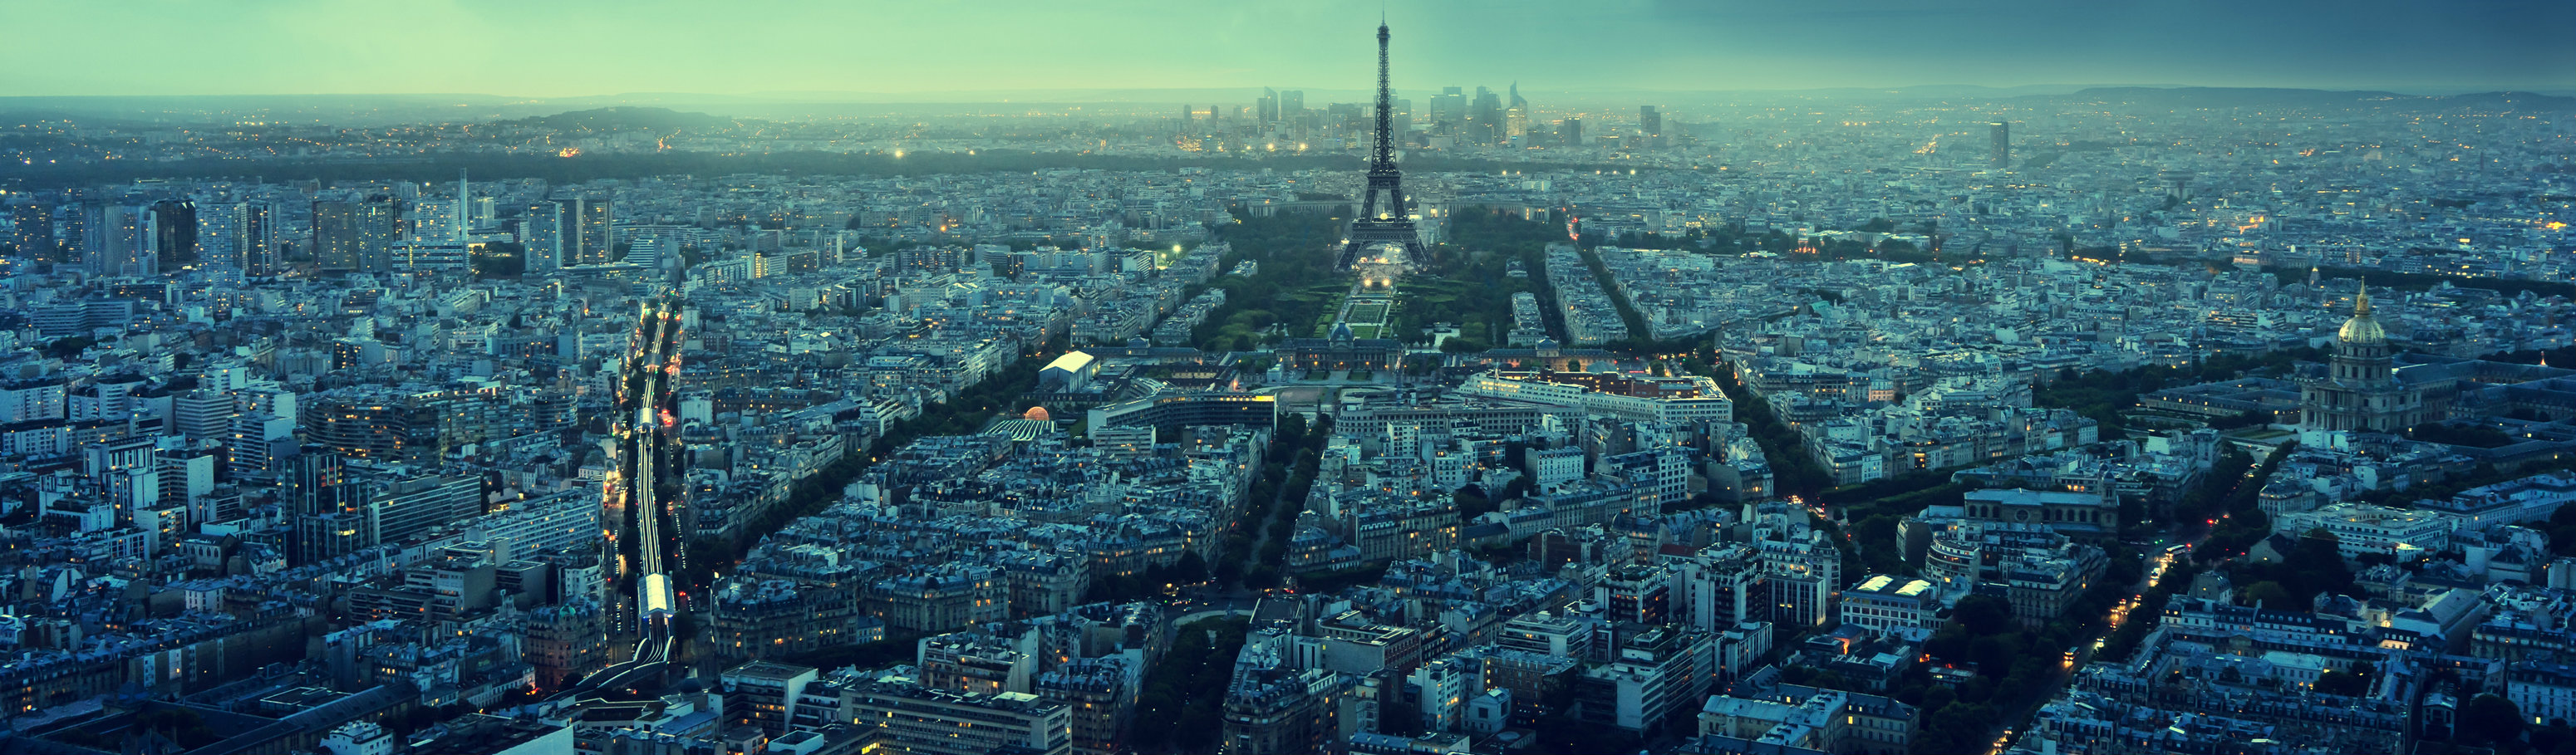 Best areas to stay in Paris - Top areas and hotels